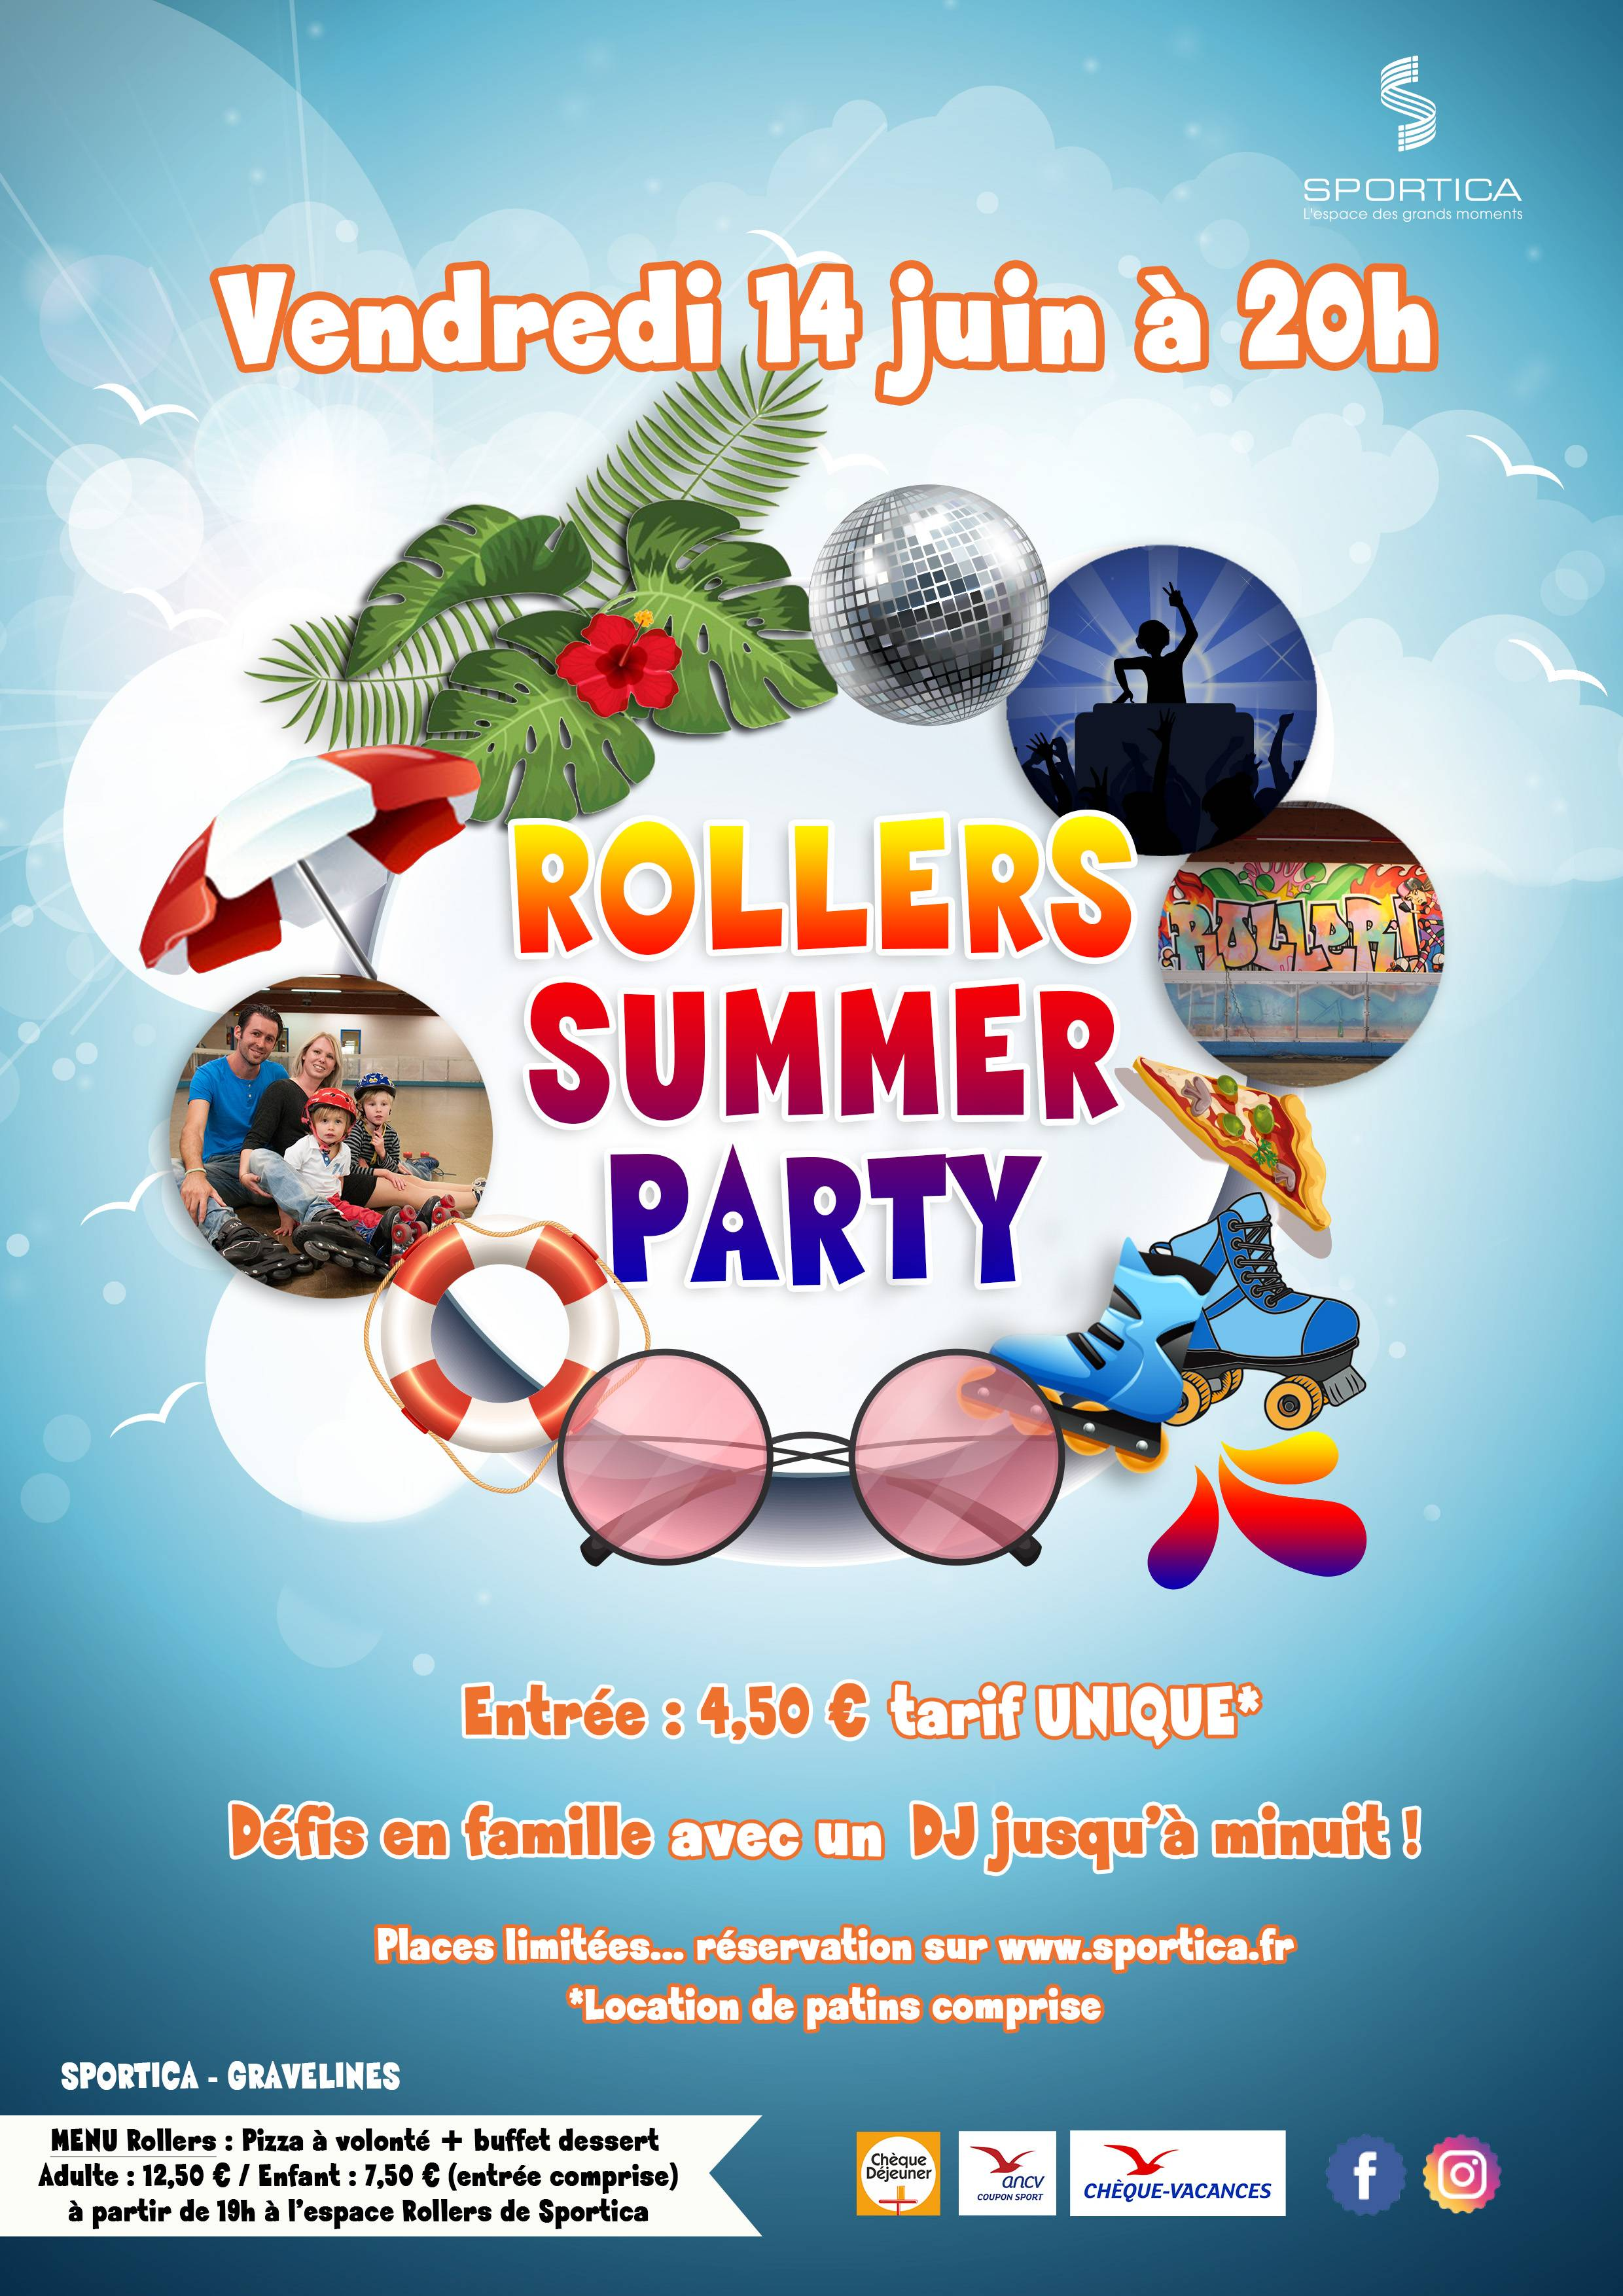 Rollers Summer Party